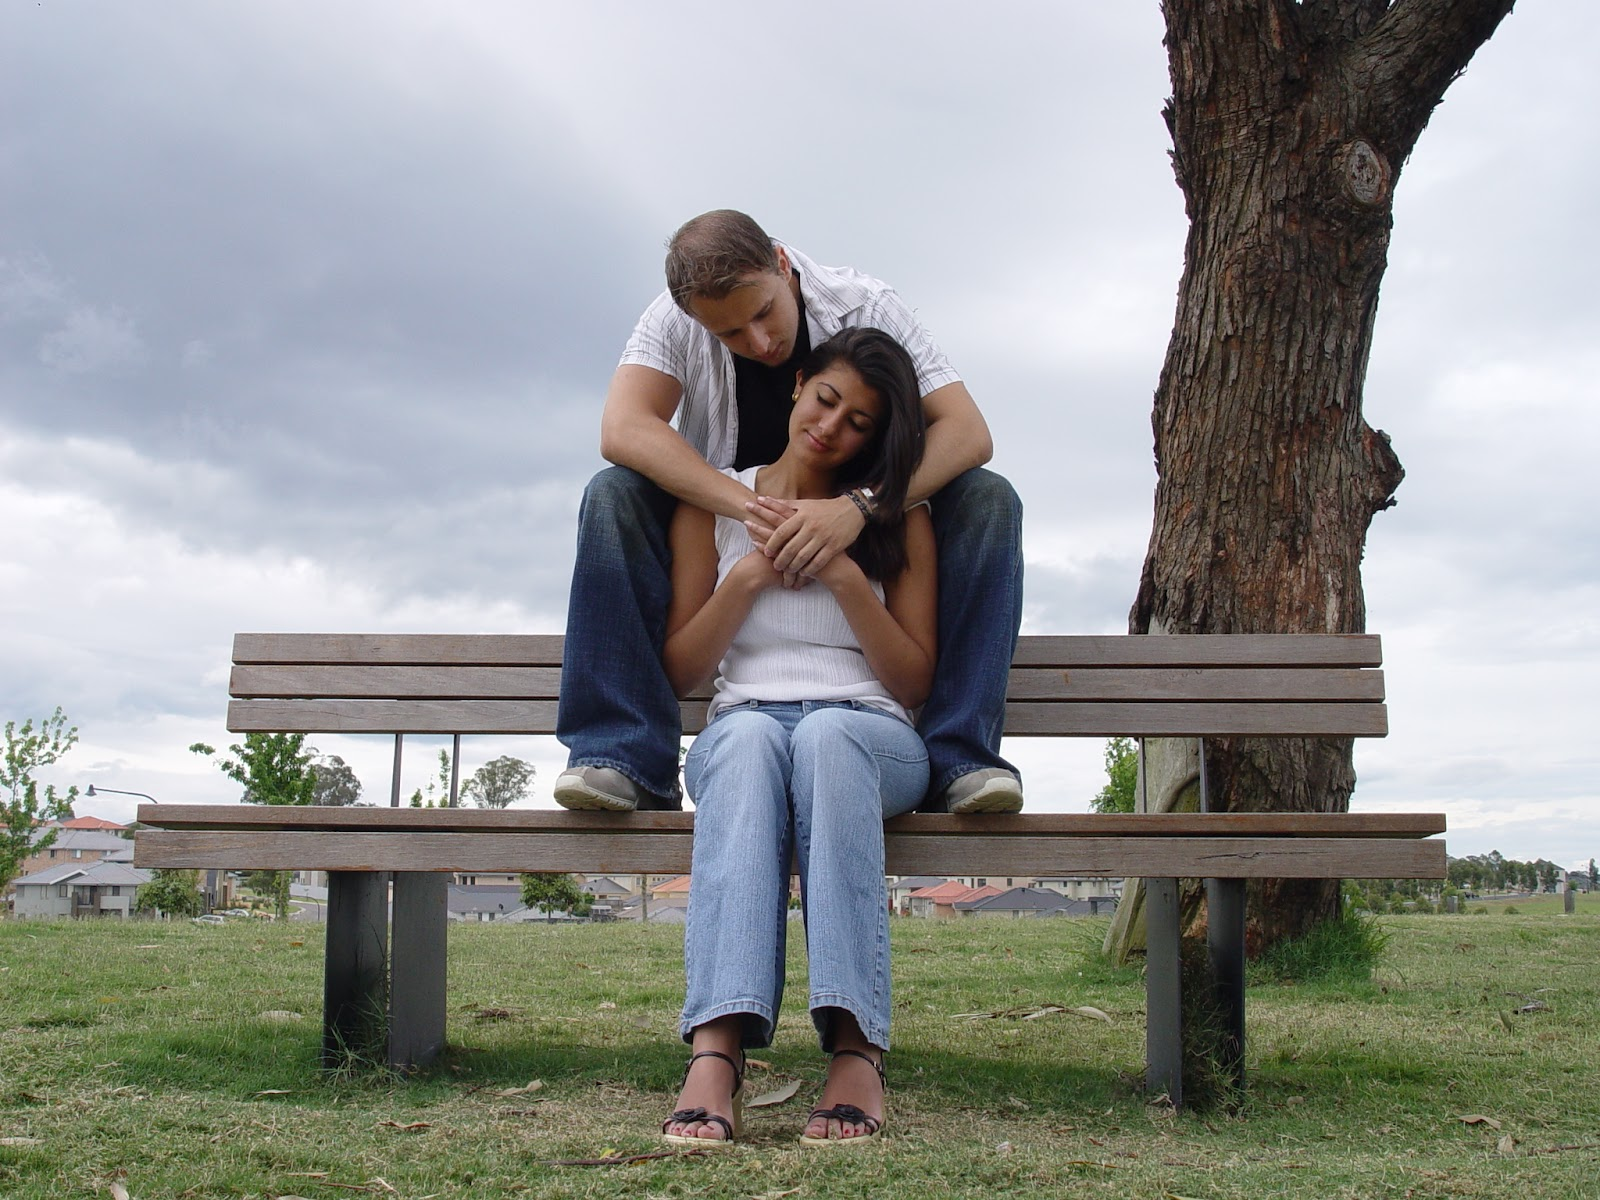 Love couple Romance Wallpaper : Romantic couple wallpapers Romantic couple HD wallpapers couple love romantic couple ...